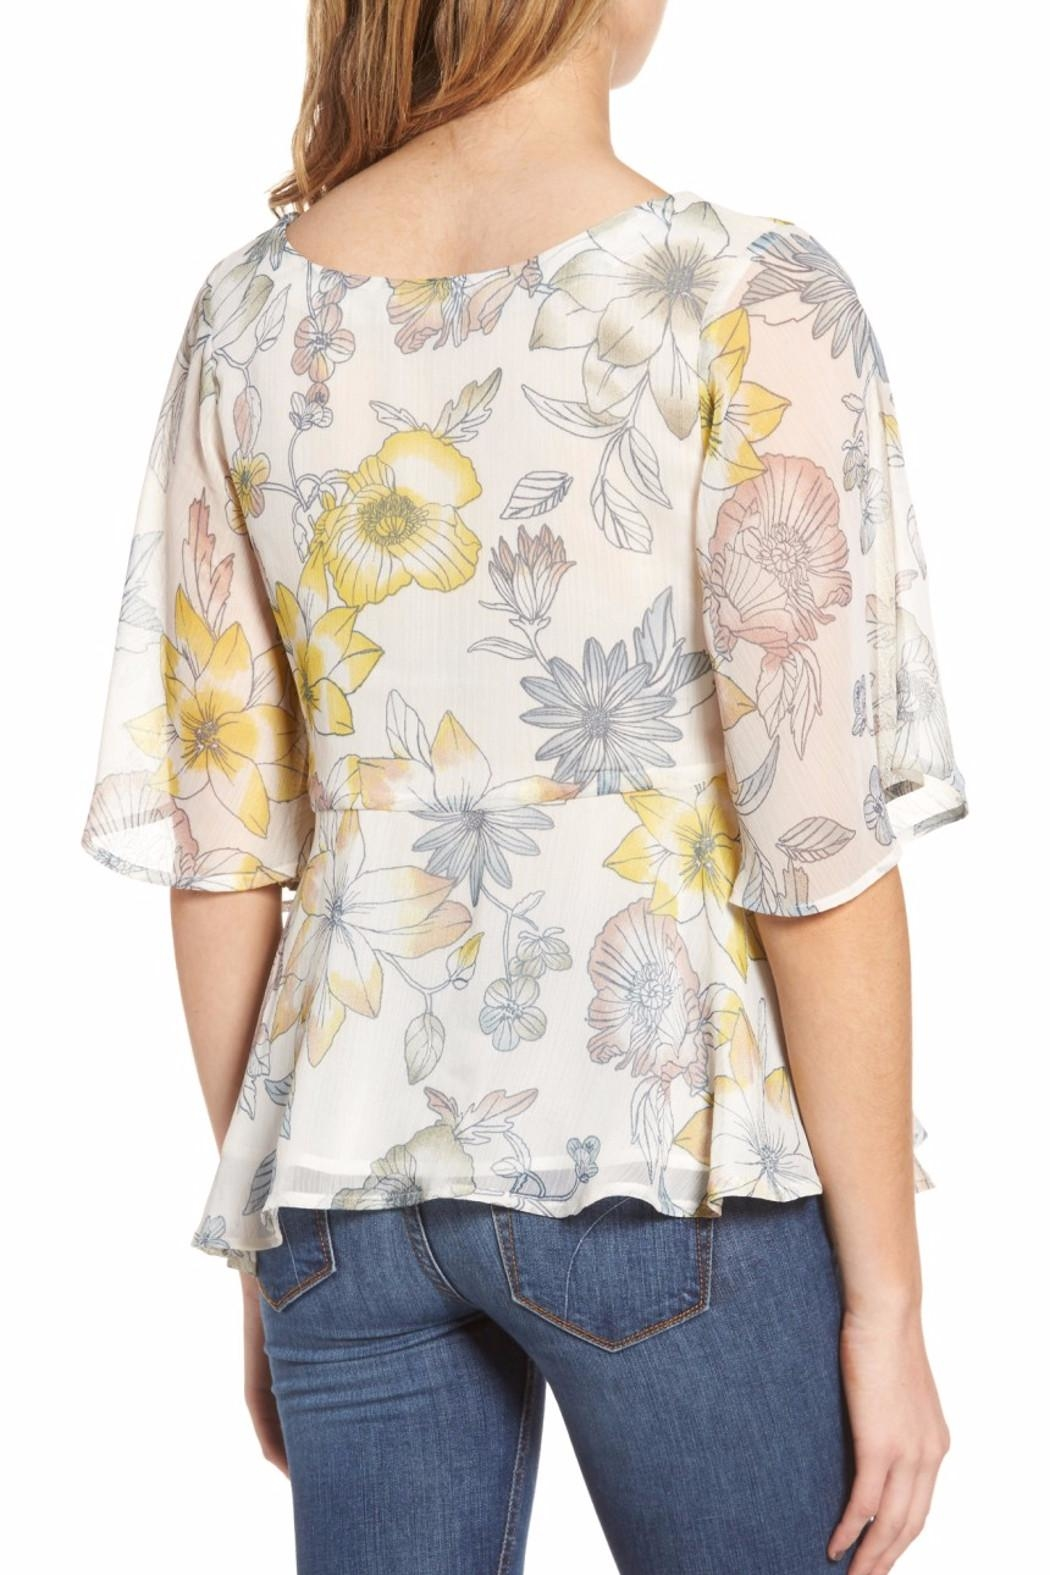 Cupcakes & Cashmere Keenan Floral Blouse - Front Full Image